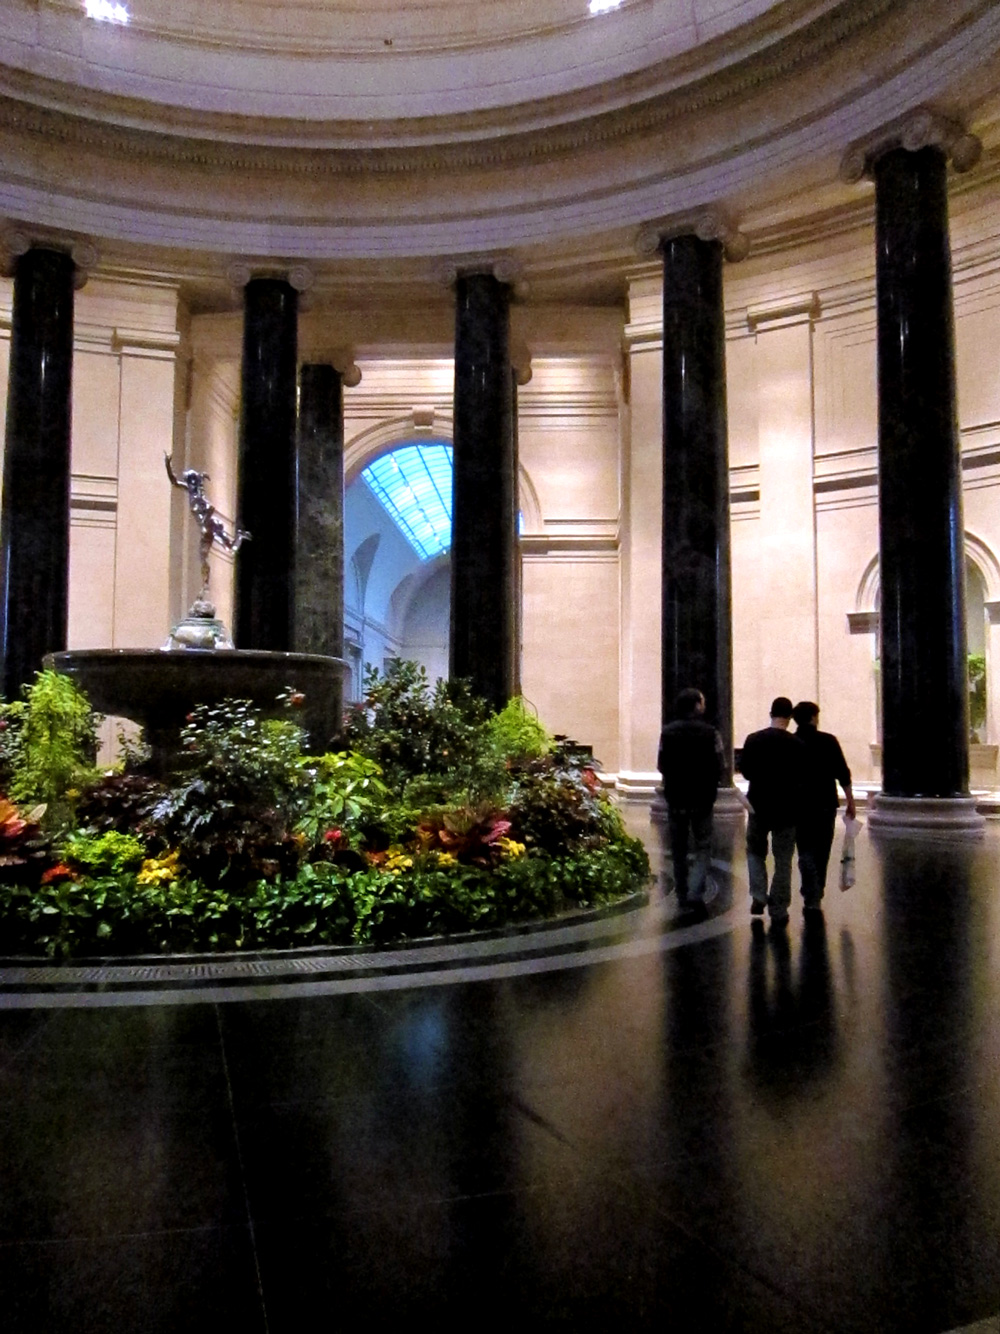 National Gallery of Art rotunda (Washington DC), © 2014 Susan Barsy